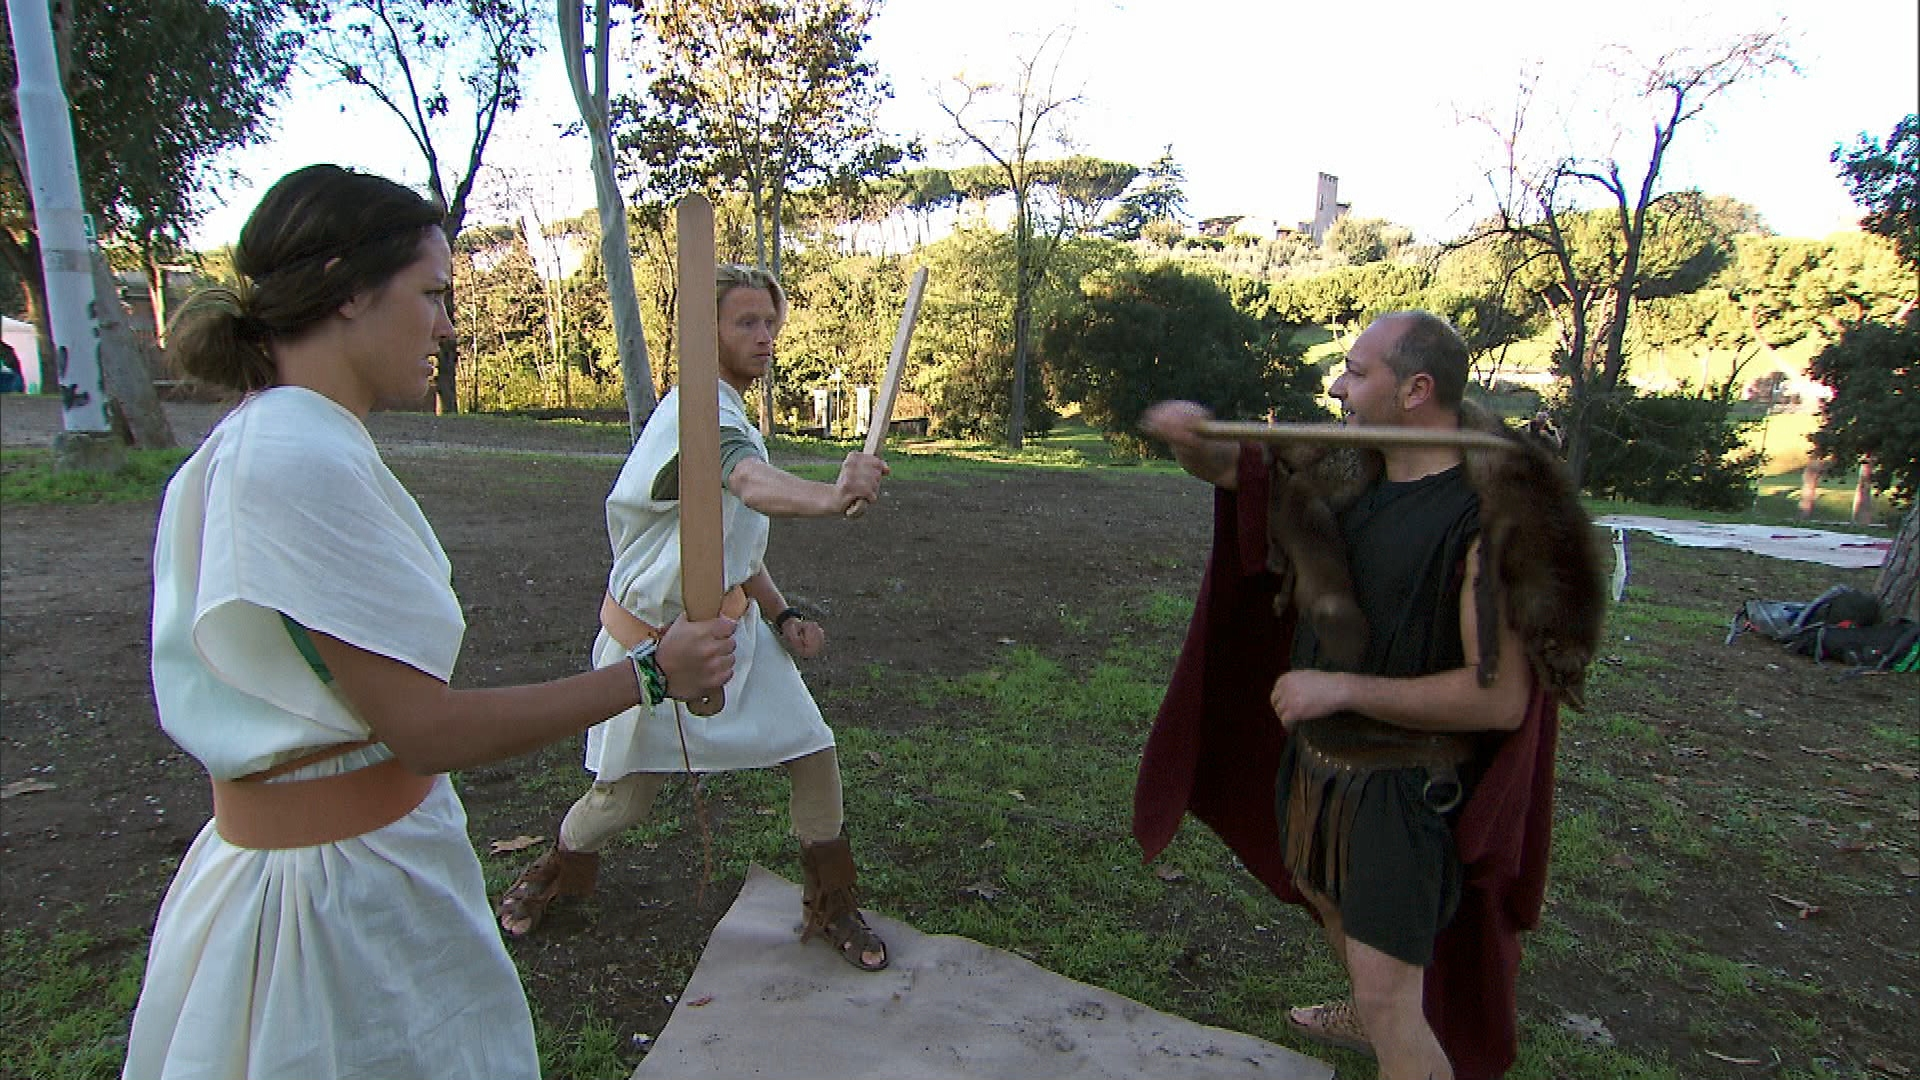 Battling a Gladiator in Season 24 Episode 7